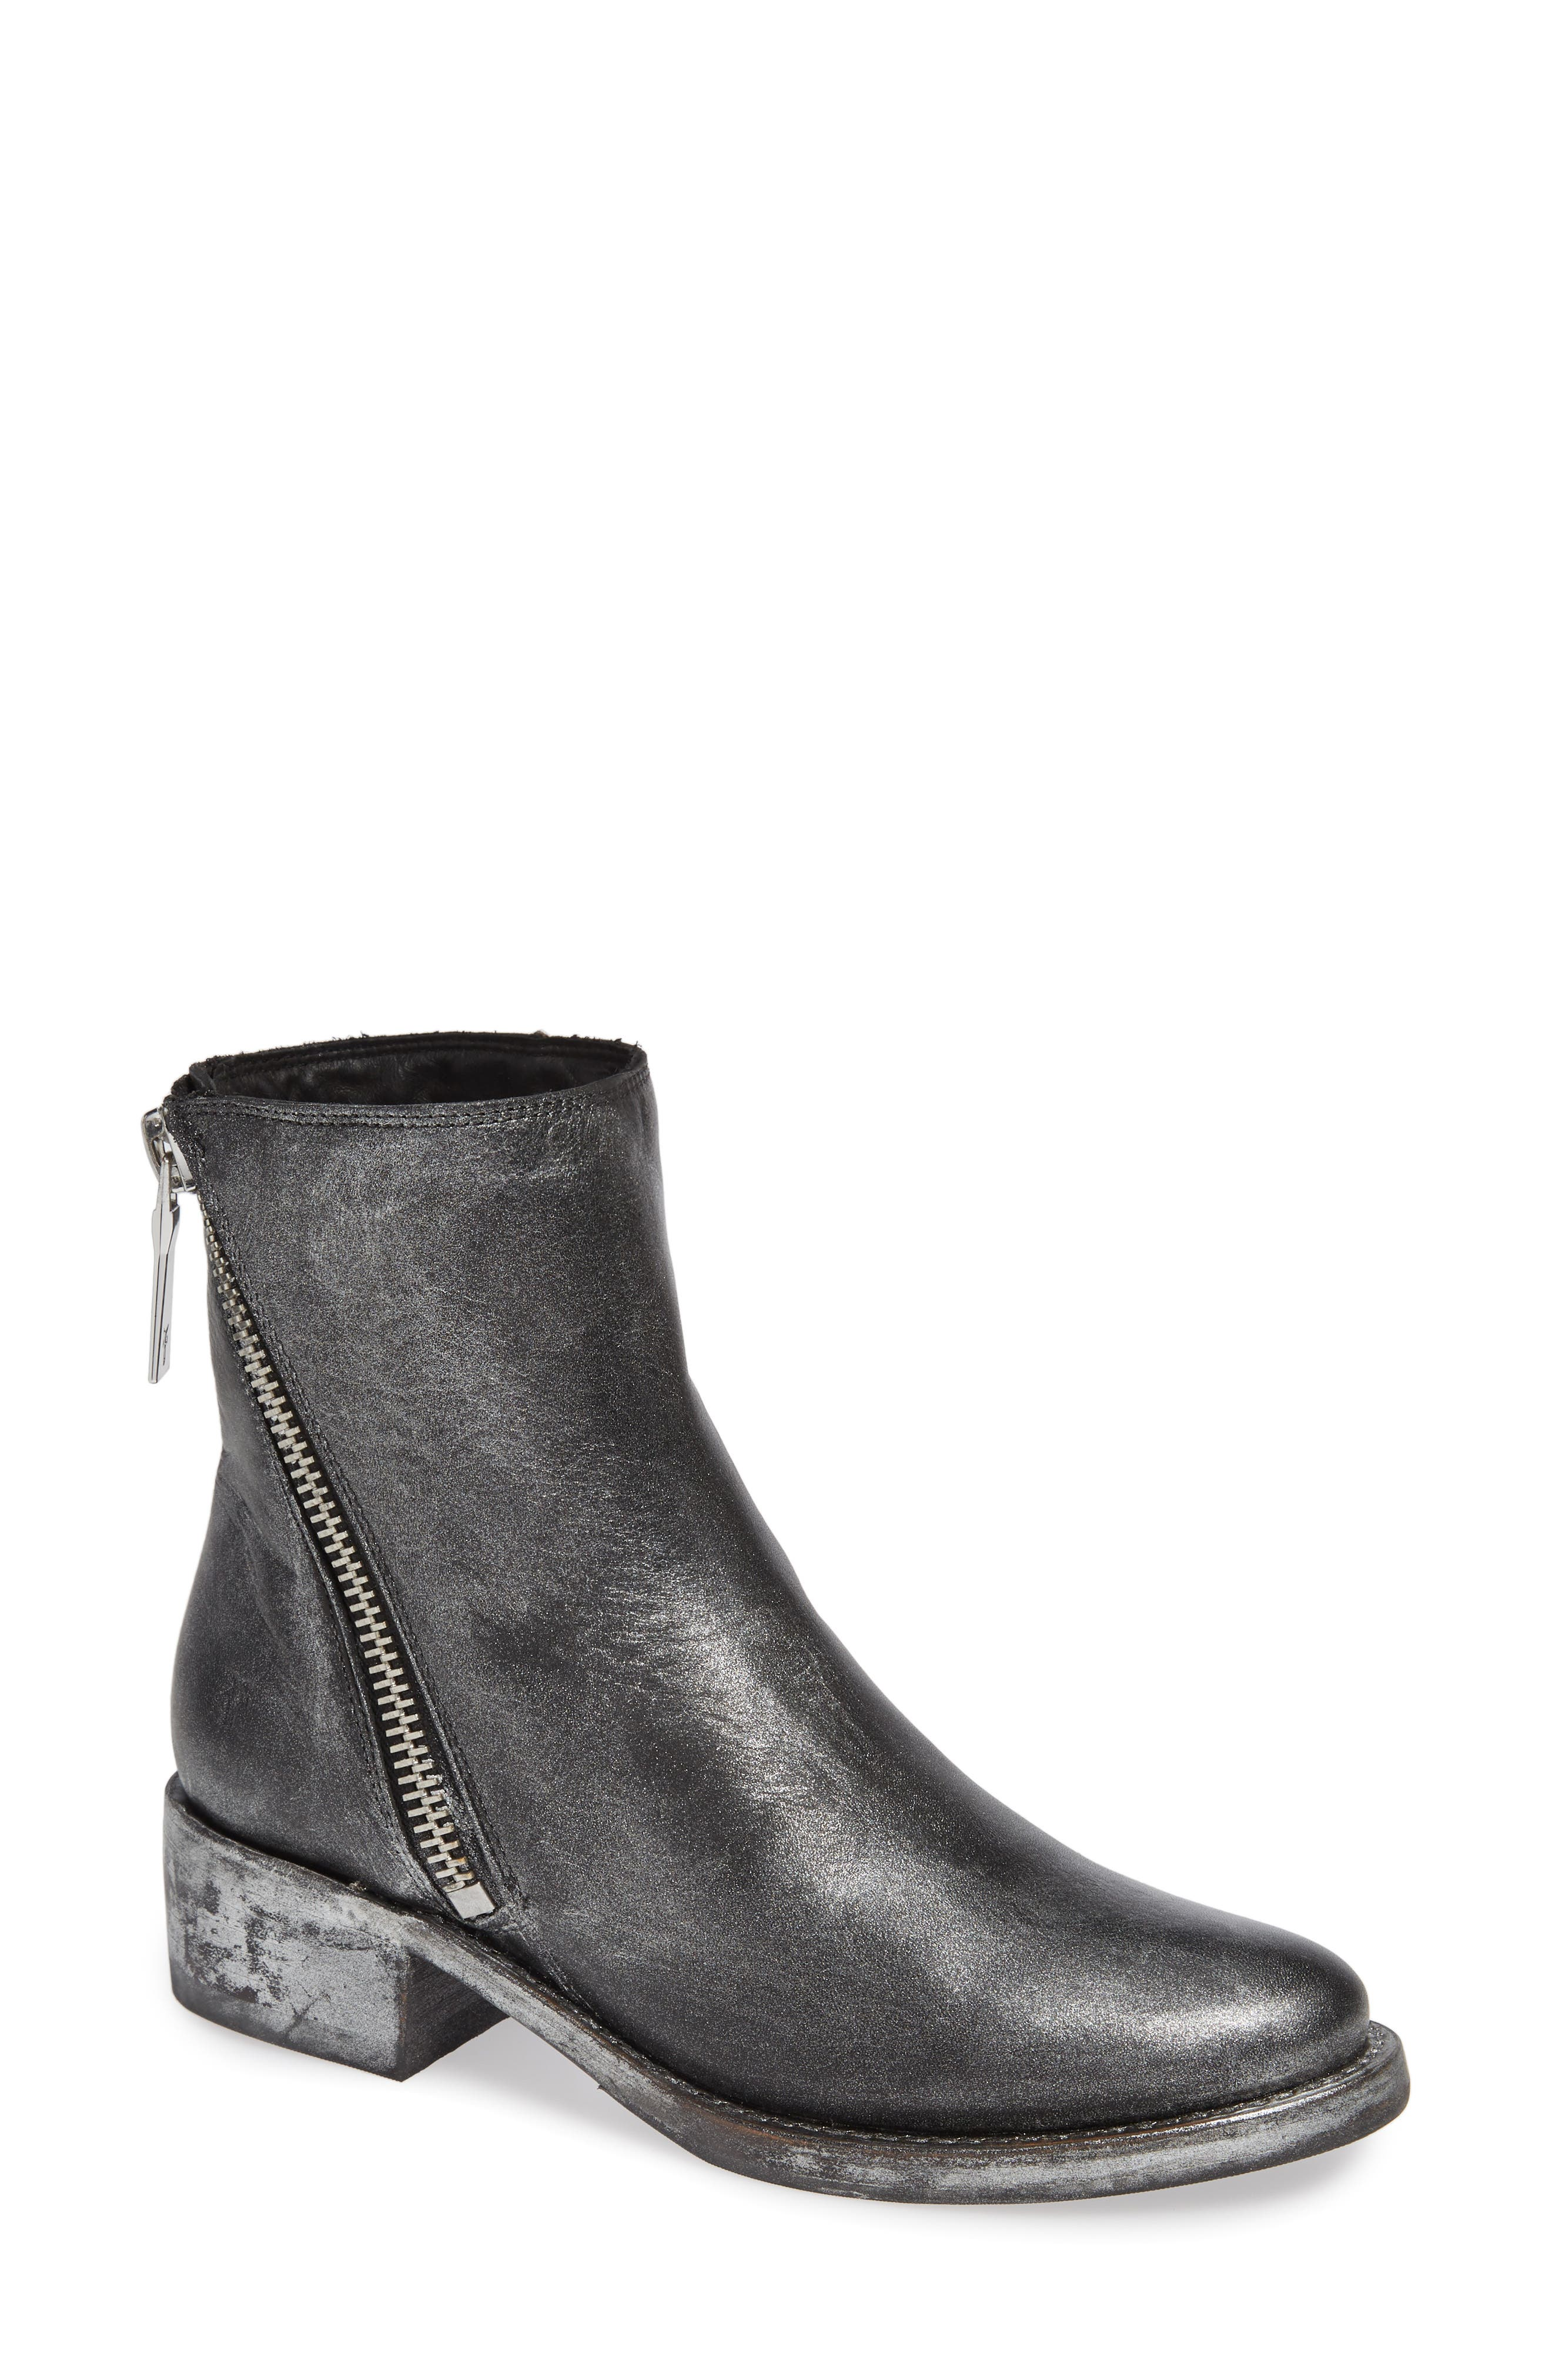 Frye Demi Zip Bootie, Black